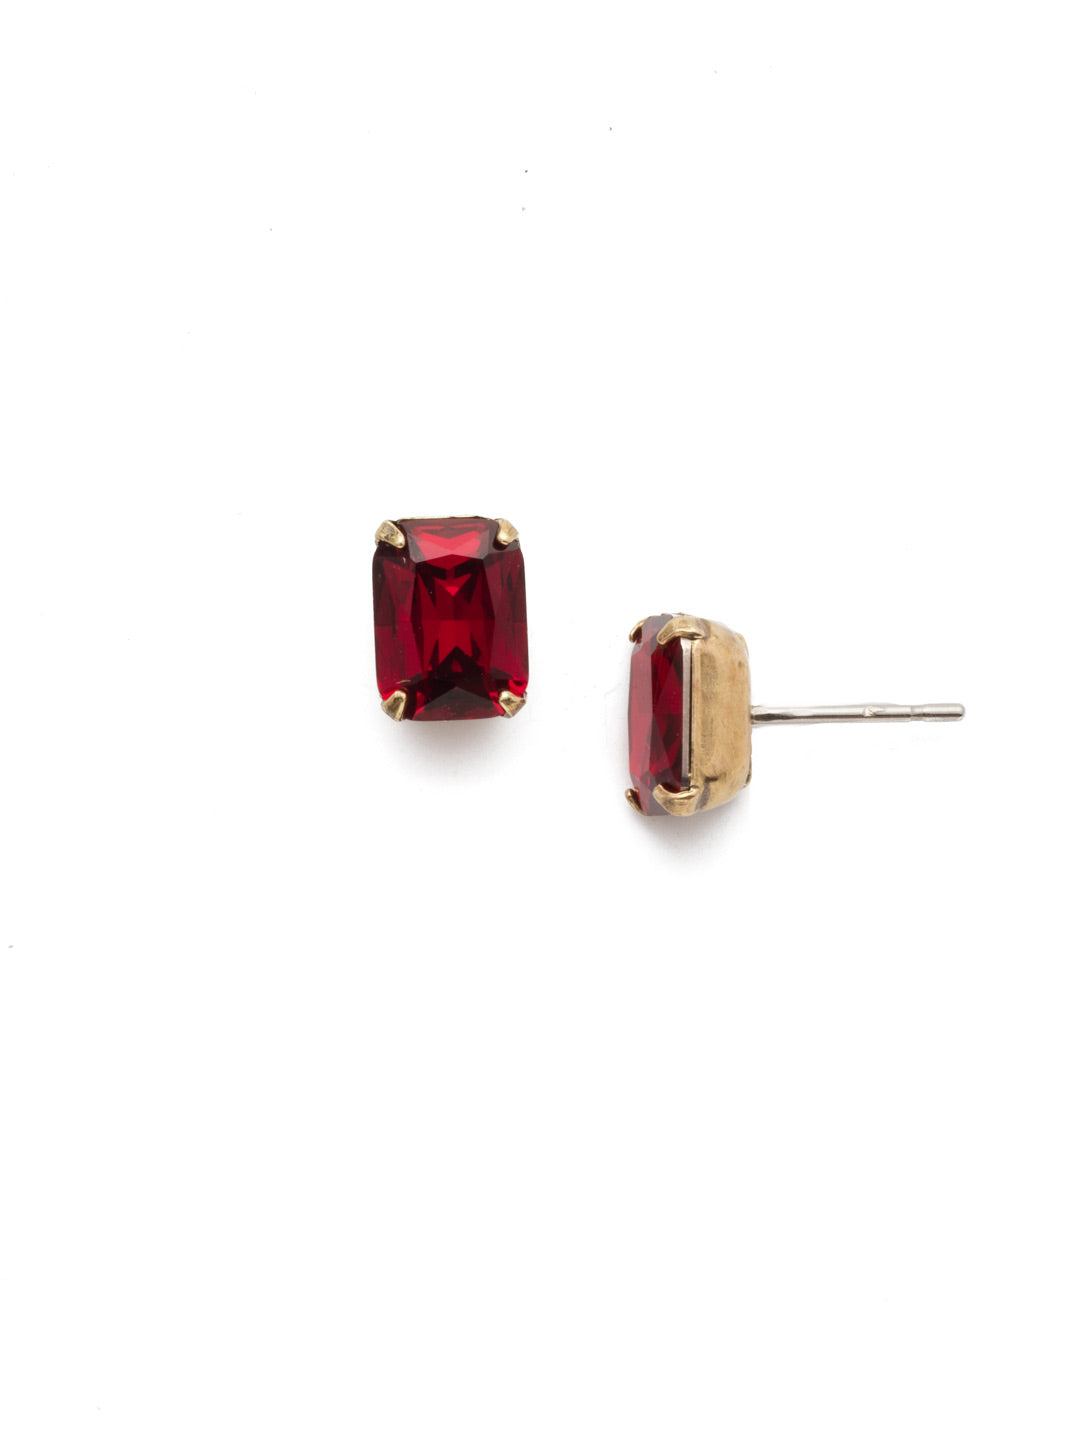 Mini Emerald Cut Stud Earrings - EBY42AGSI